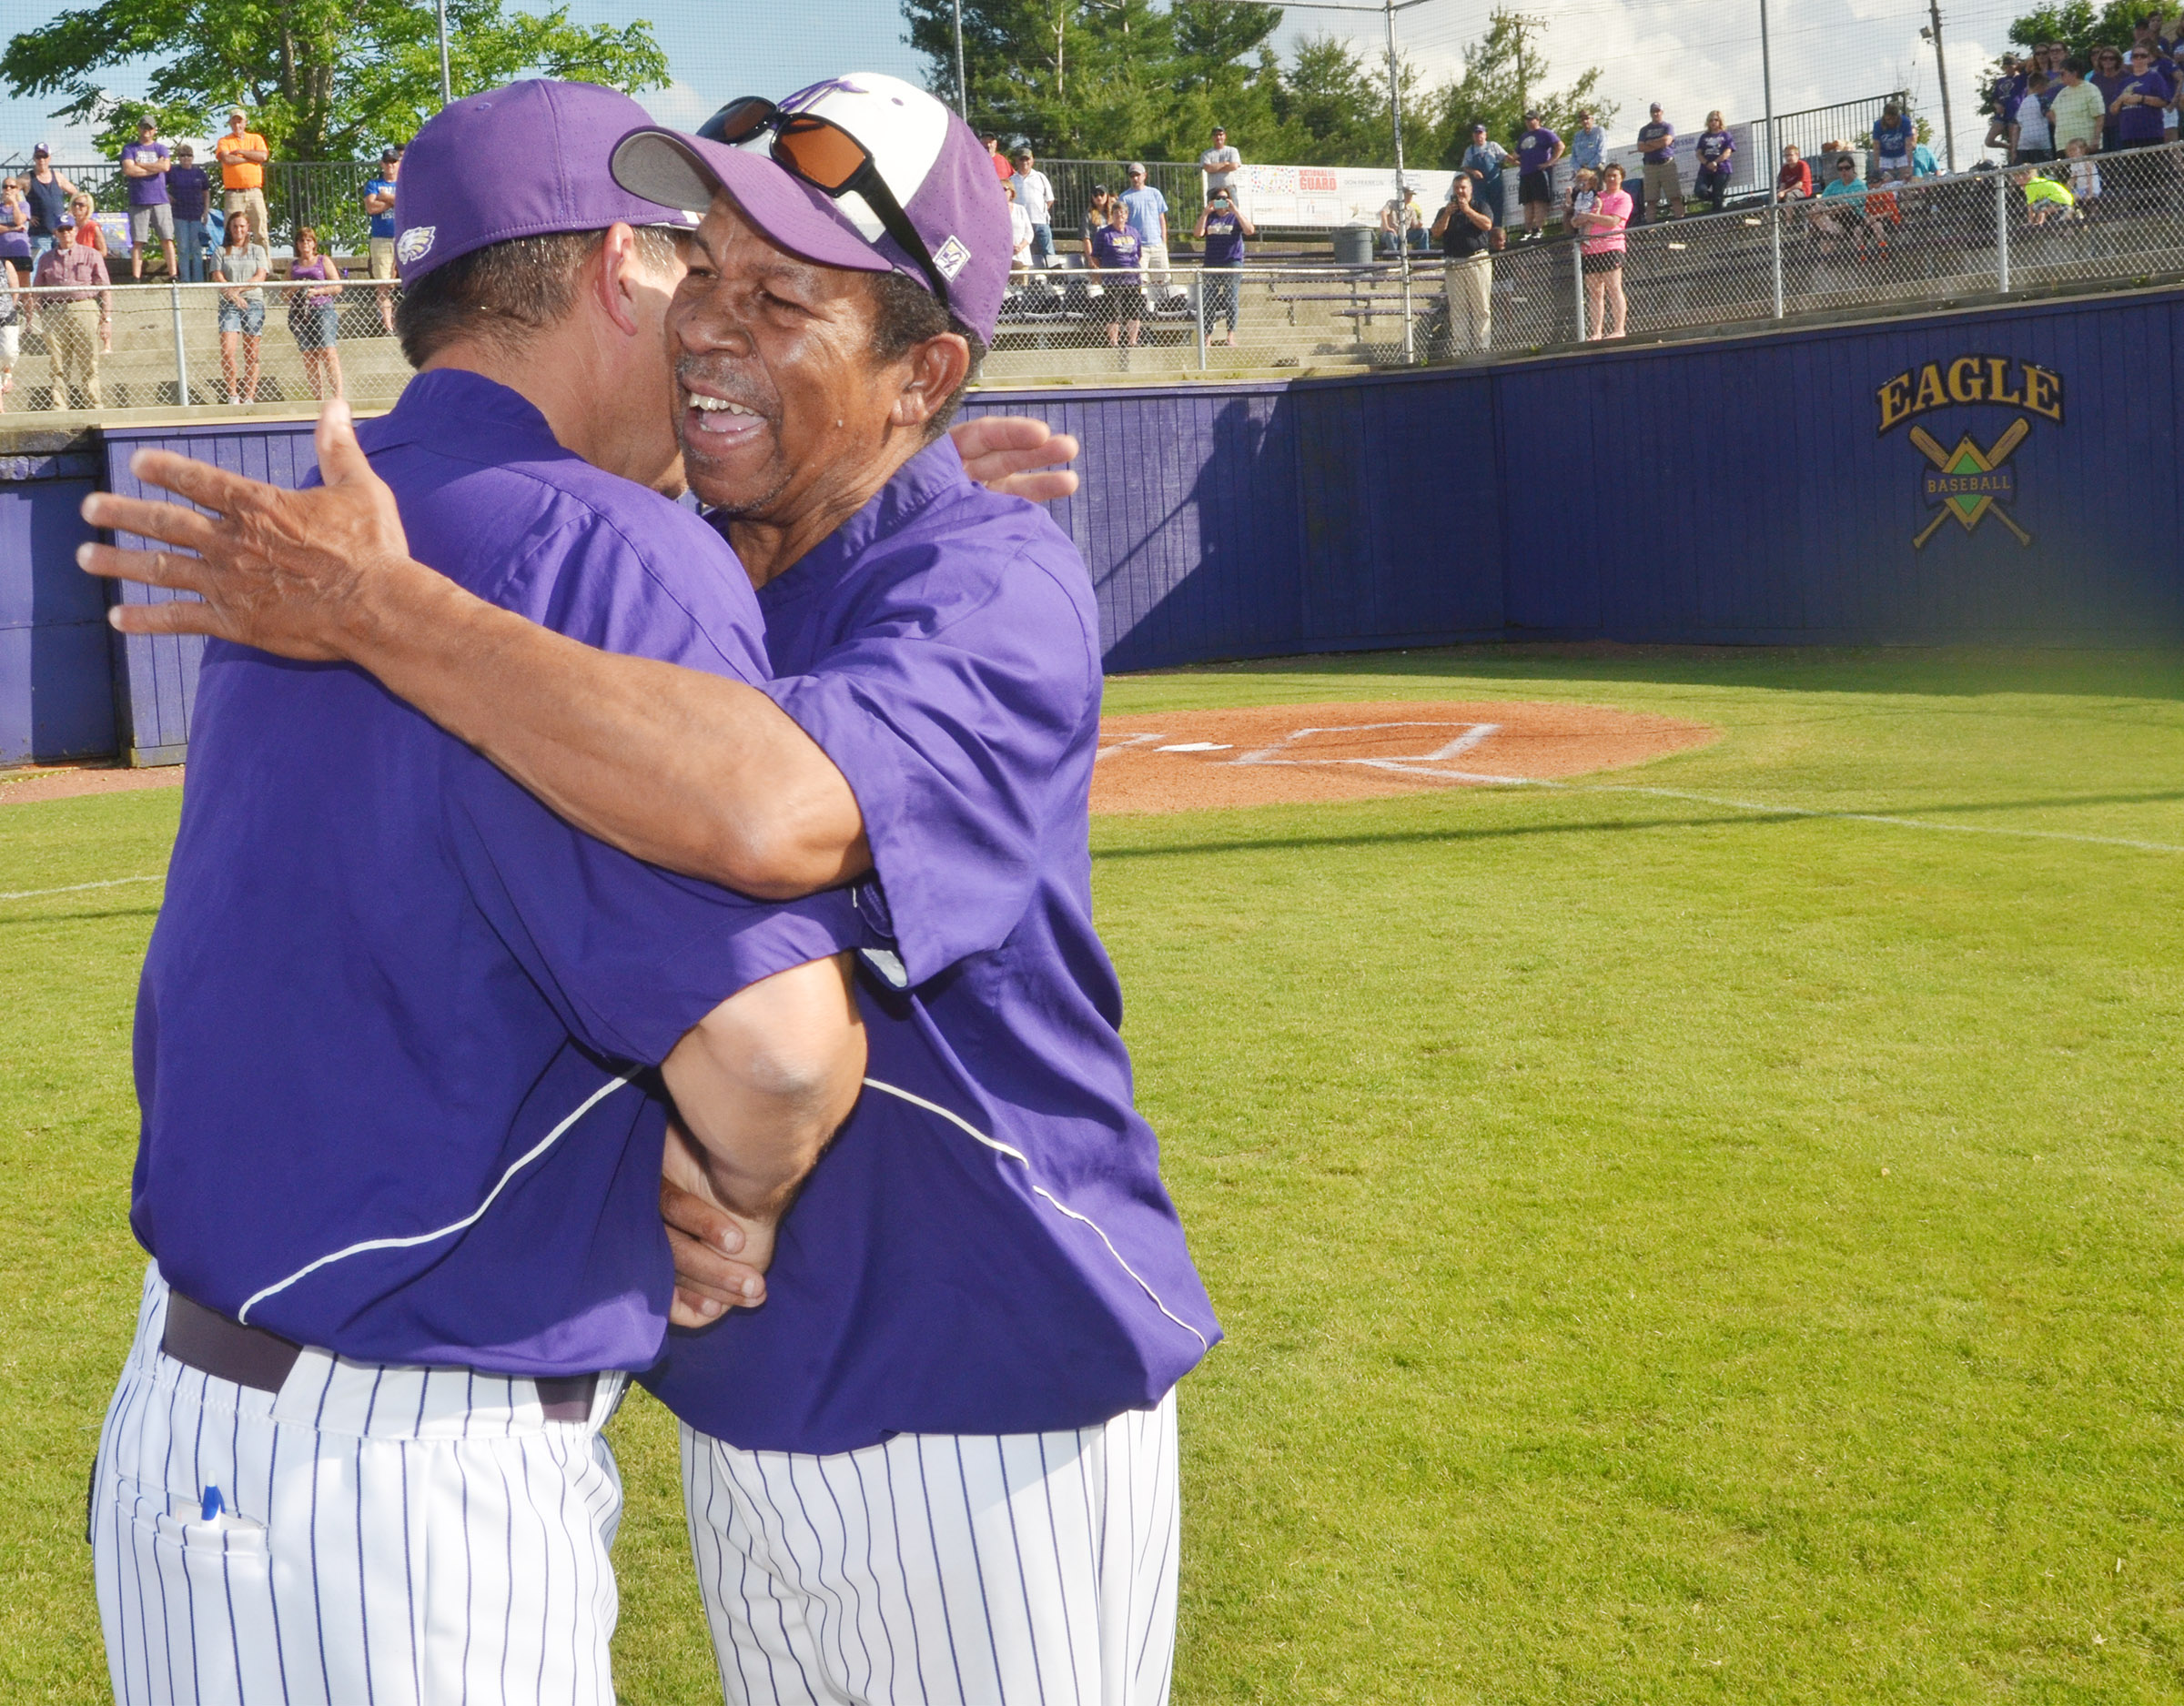 CHS head baseball coach Kirby Smith hugs assistant coach Phil Gowdy. They two have coached together for many years.